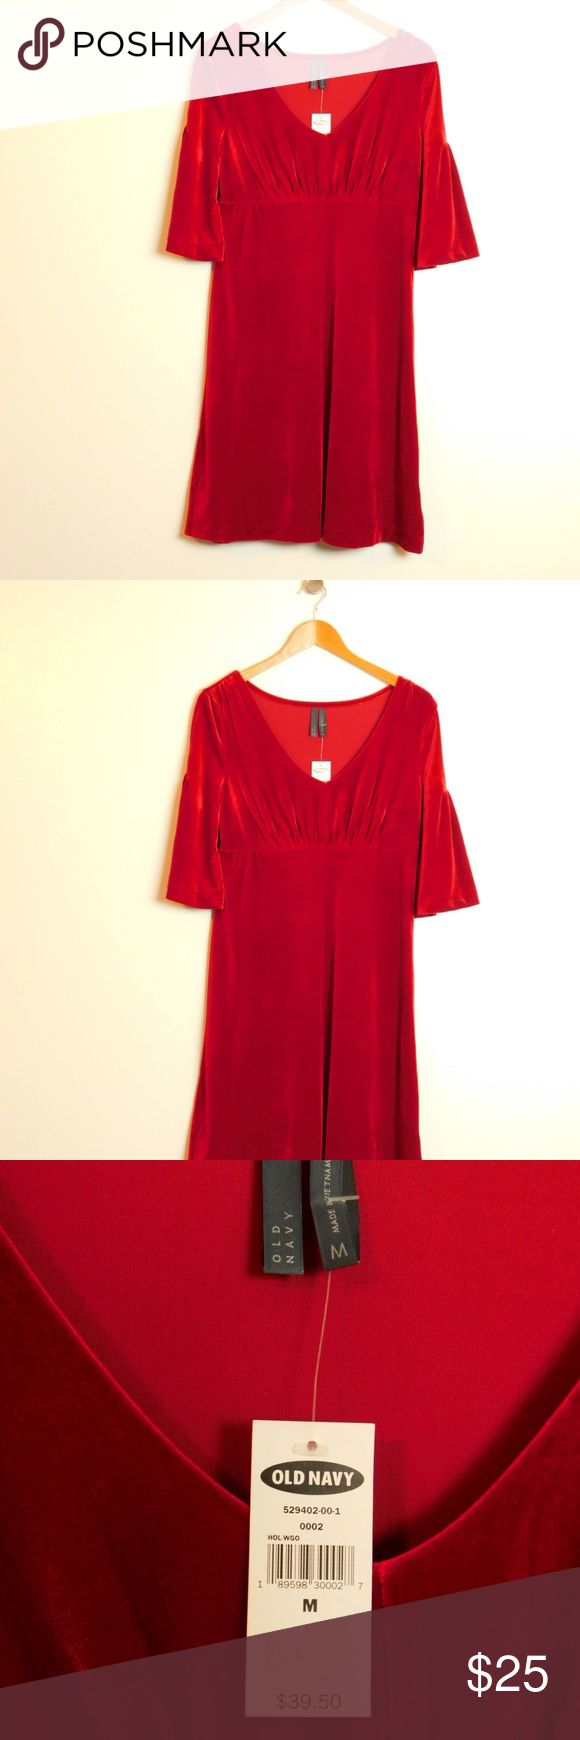 """Red Velvet Bell Sleeve Holiday Party Dress Size M """"Old Navy"""" elegant holiday party special occasion dress Women's size Medium M(8/10) Color:   Red Length 36"""", waist 16.5"""" across NWT New With Tags Retail $39.50  Pullover V-neckline Elbow length bell sleeve Ruched bodice, high waist No closure Stretch velvet construction Not lined  Fabric & Care 90% polyester, 10% spandex Machine washable Old Navy Dresses"""